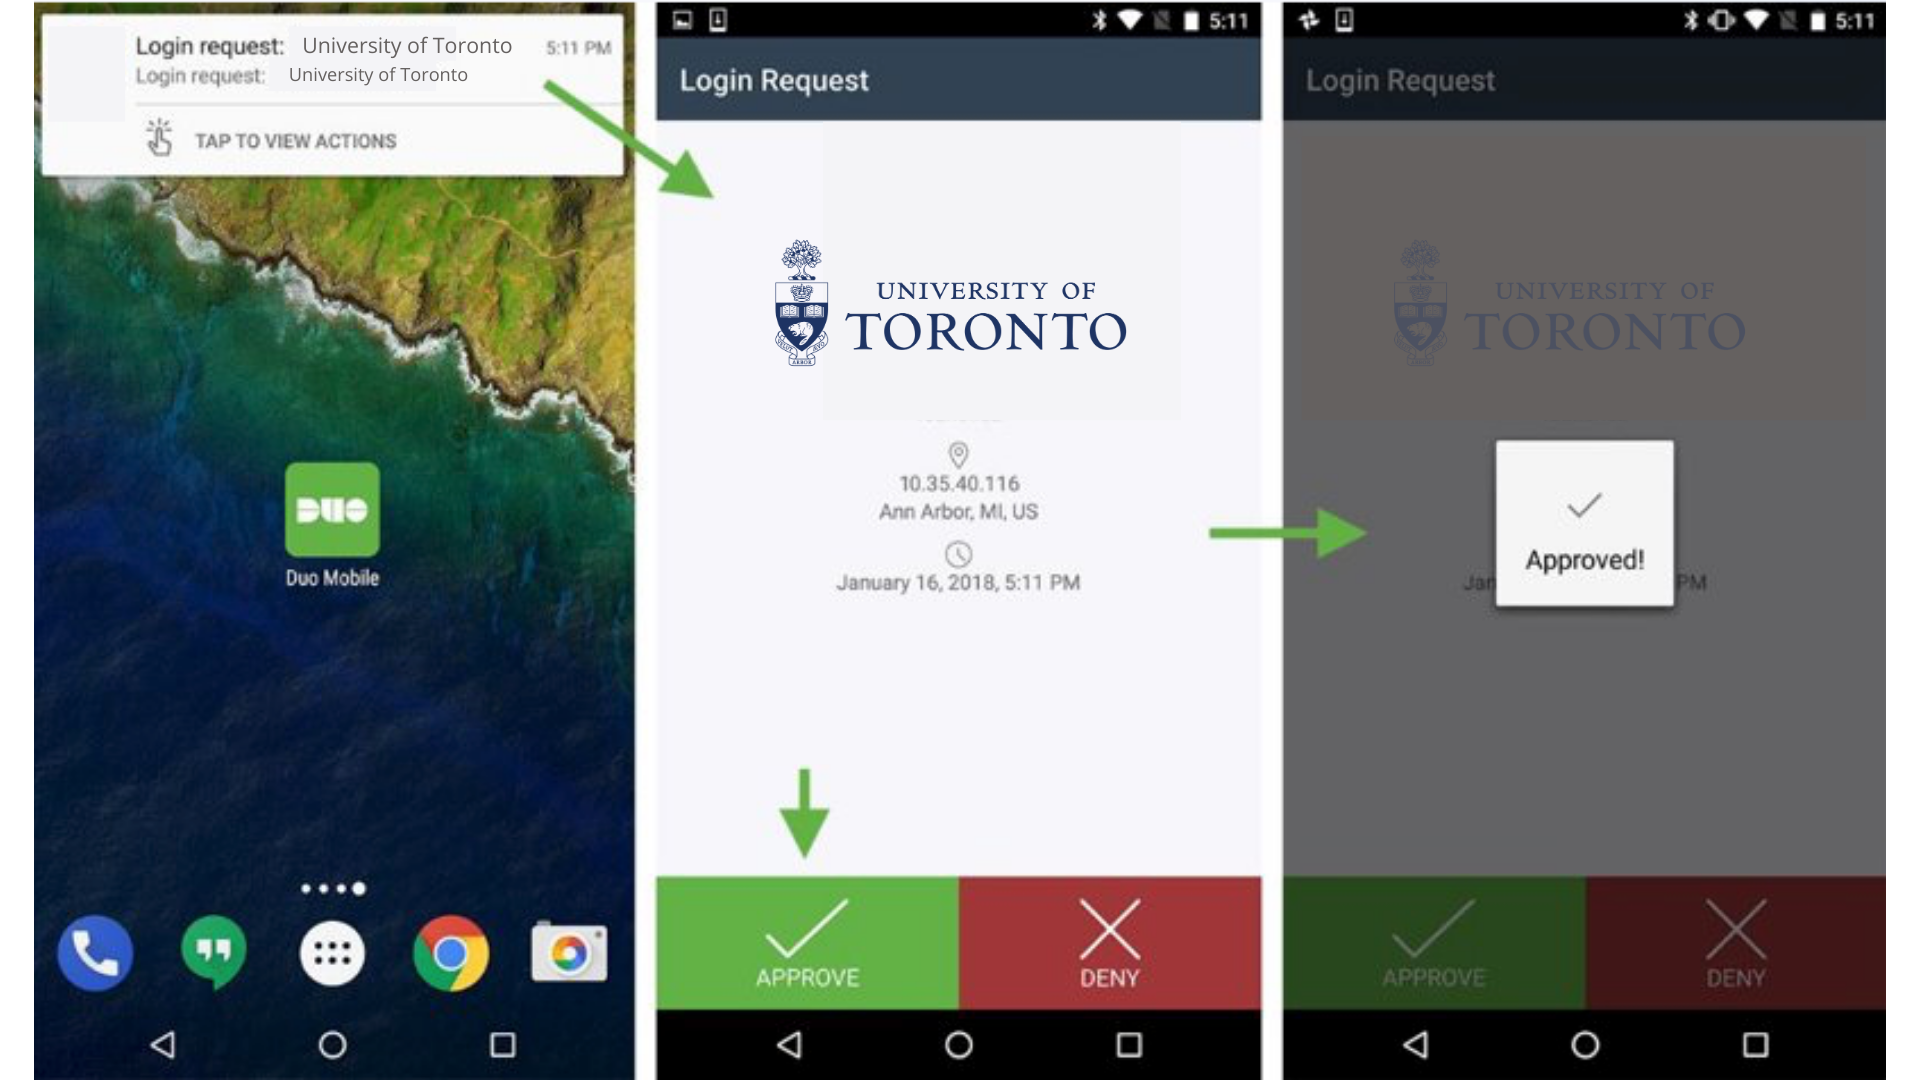 Image of authentication process on mobile phone: notification, check boxes and approval.